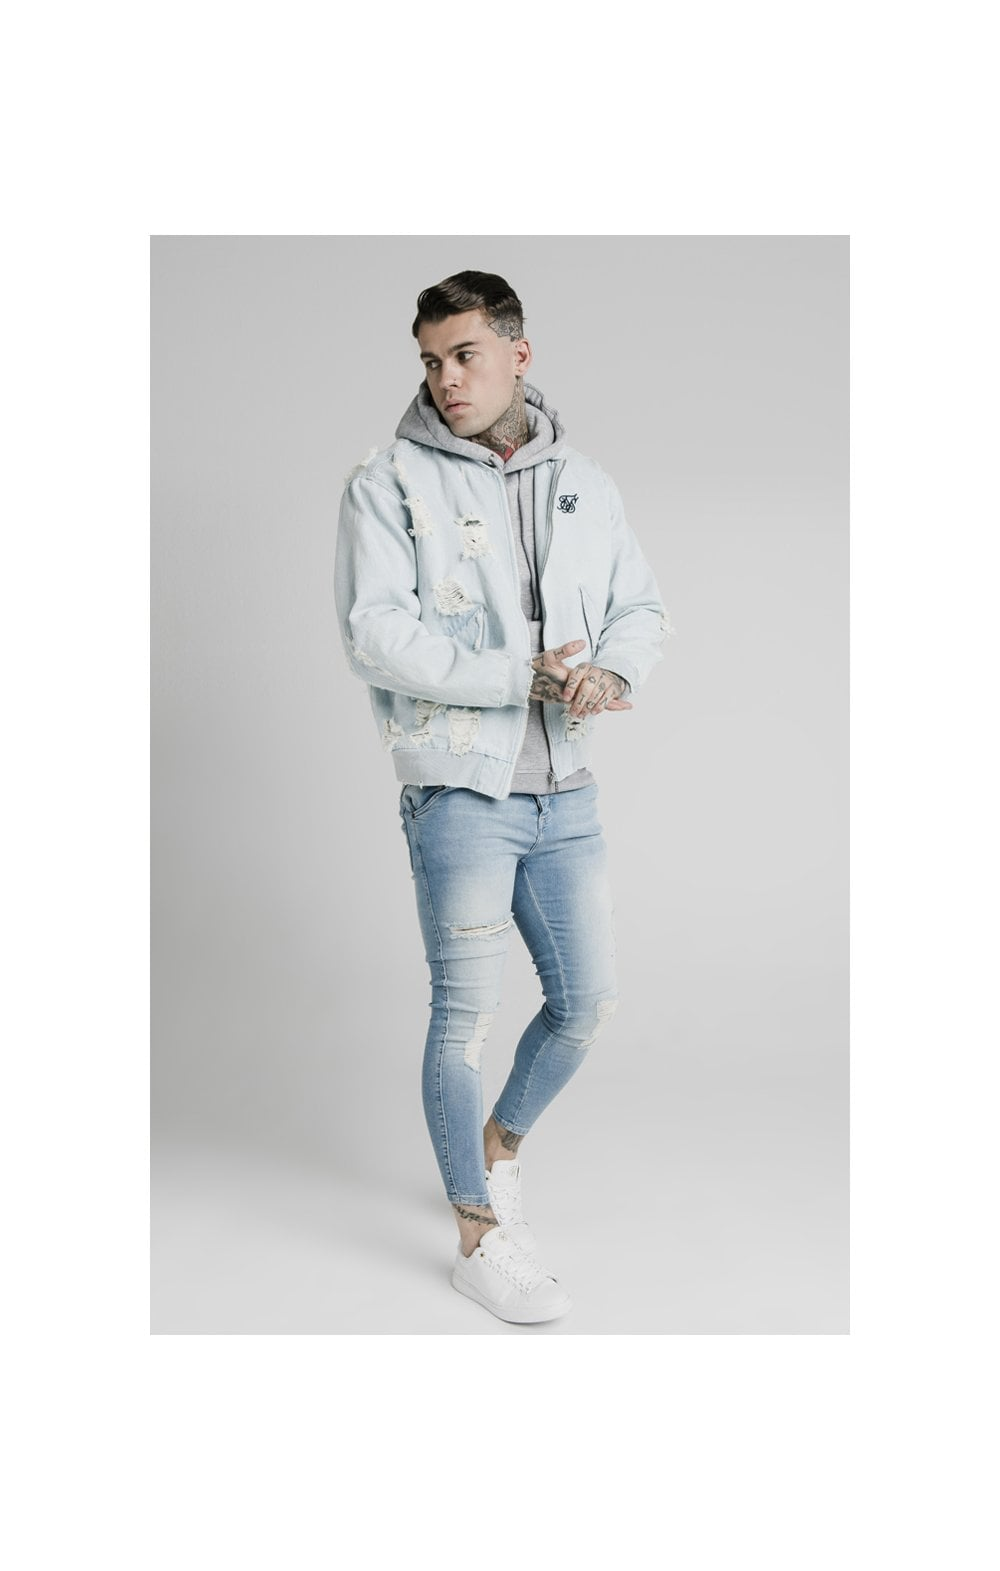 SikSilk Distressed Denim Bomber Jacket - Light Blue (4)